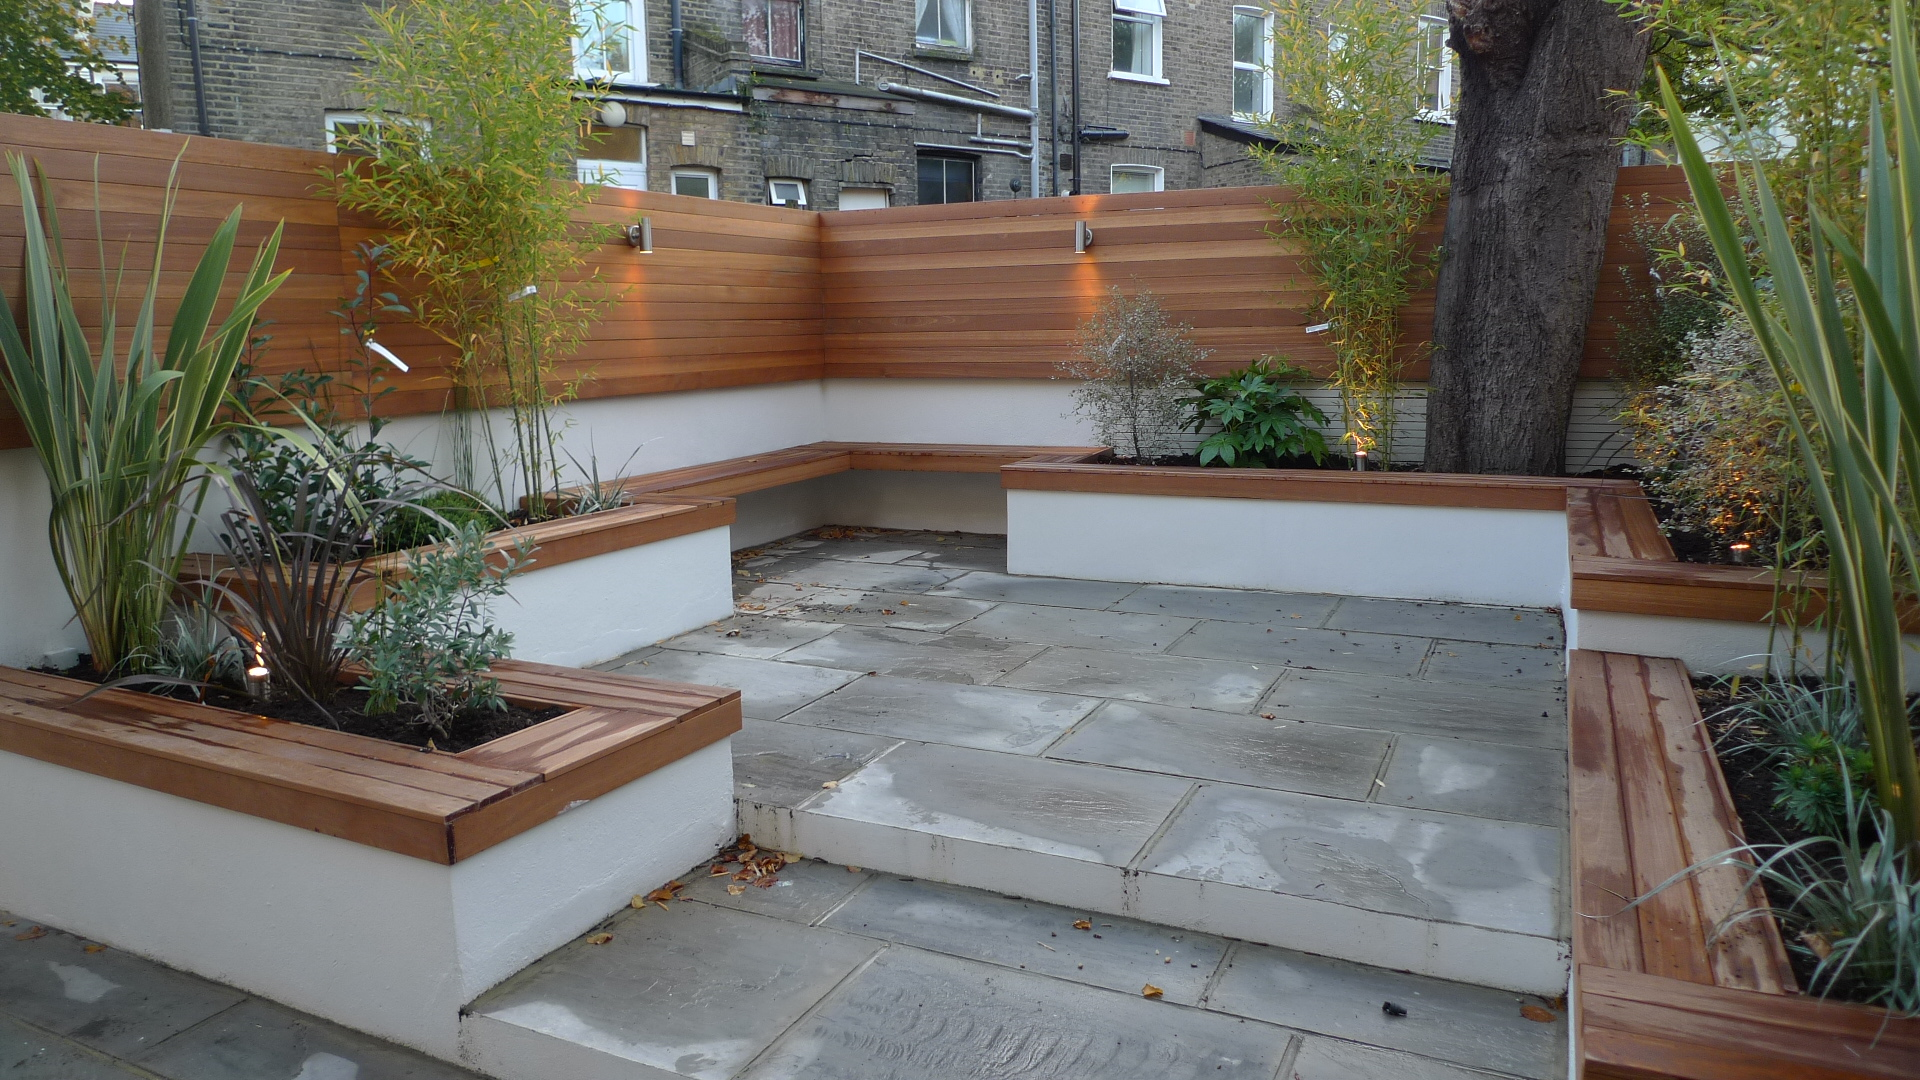 Ten great paving stones for a new patio london garden blog for Latest patio designs